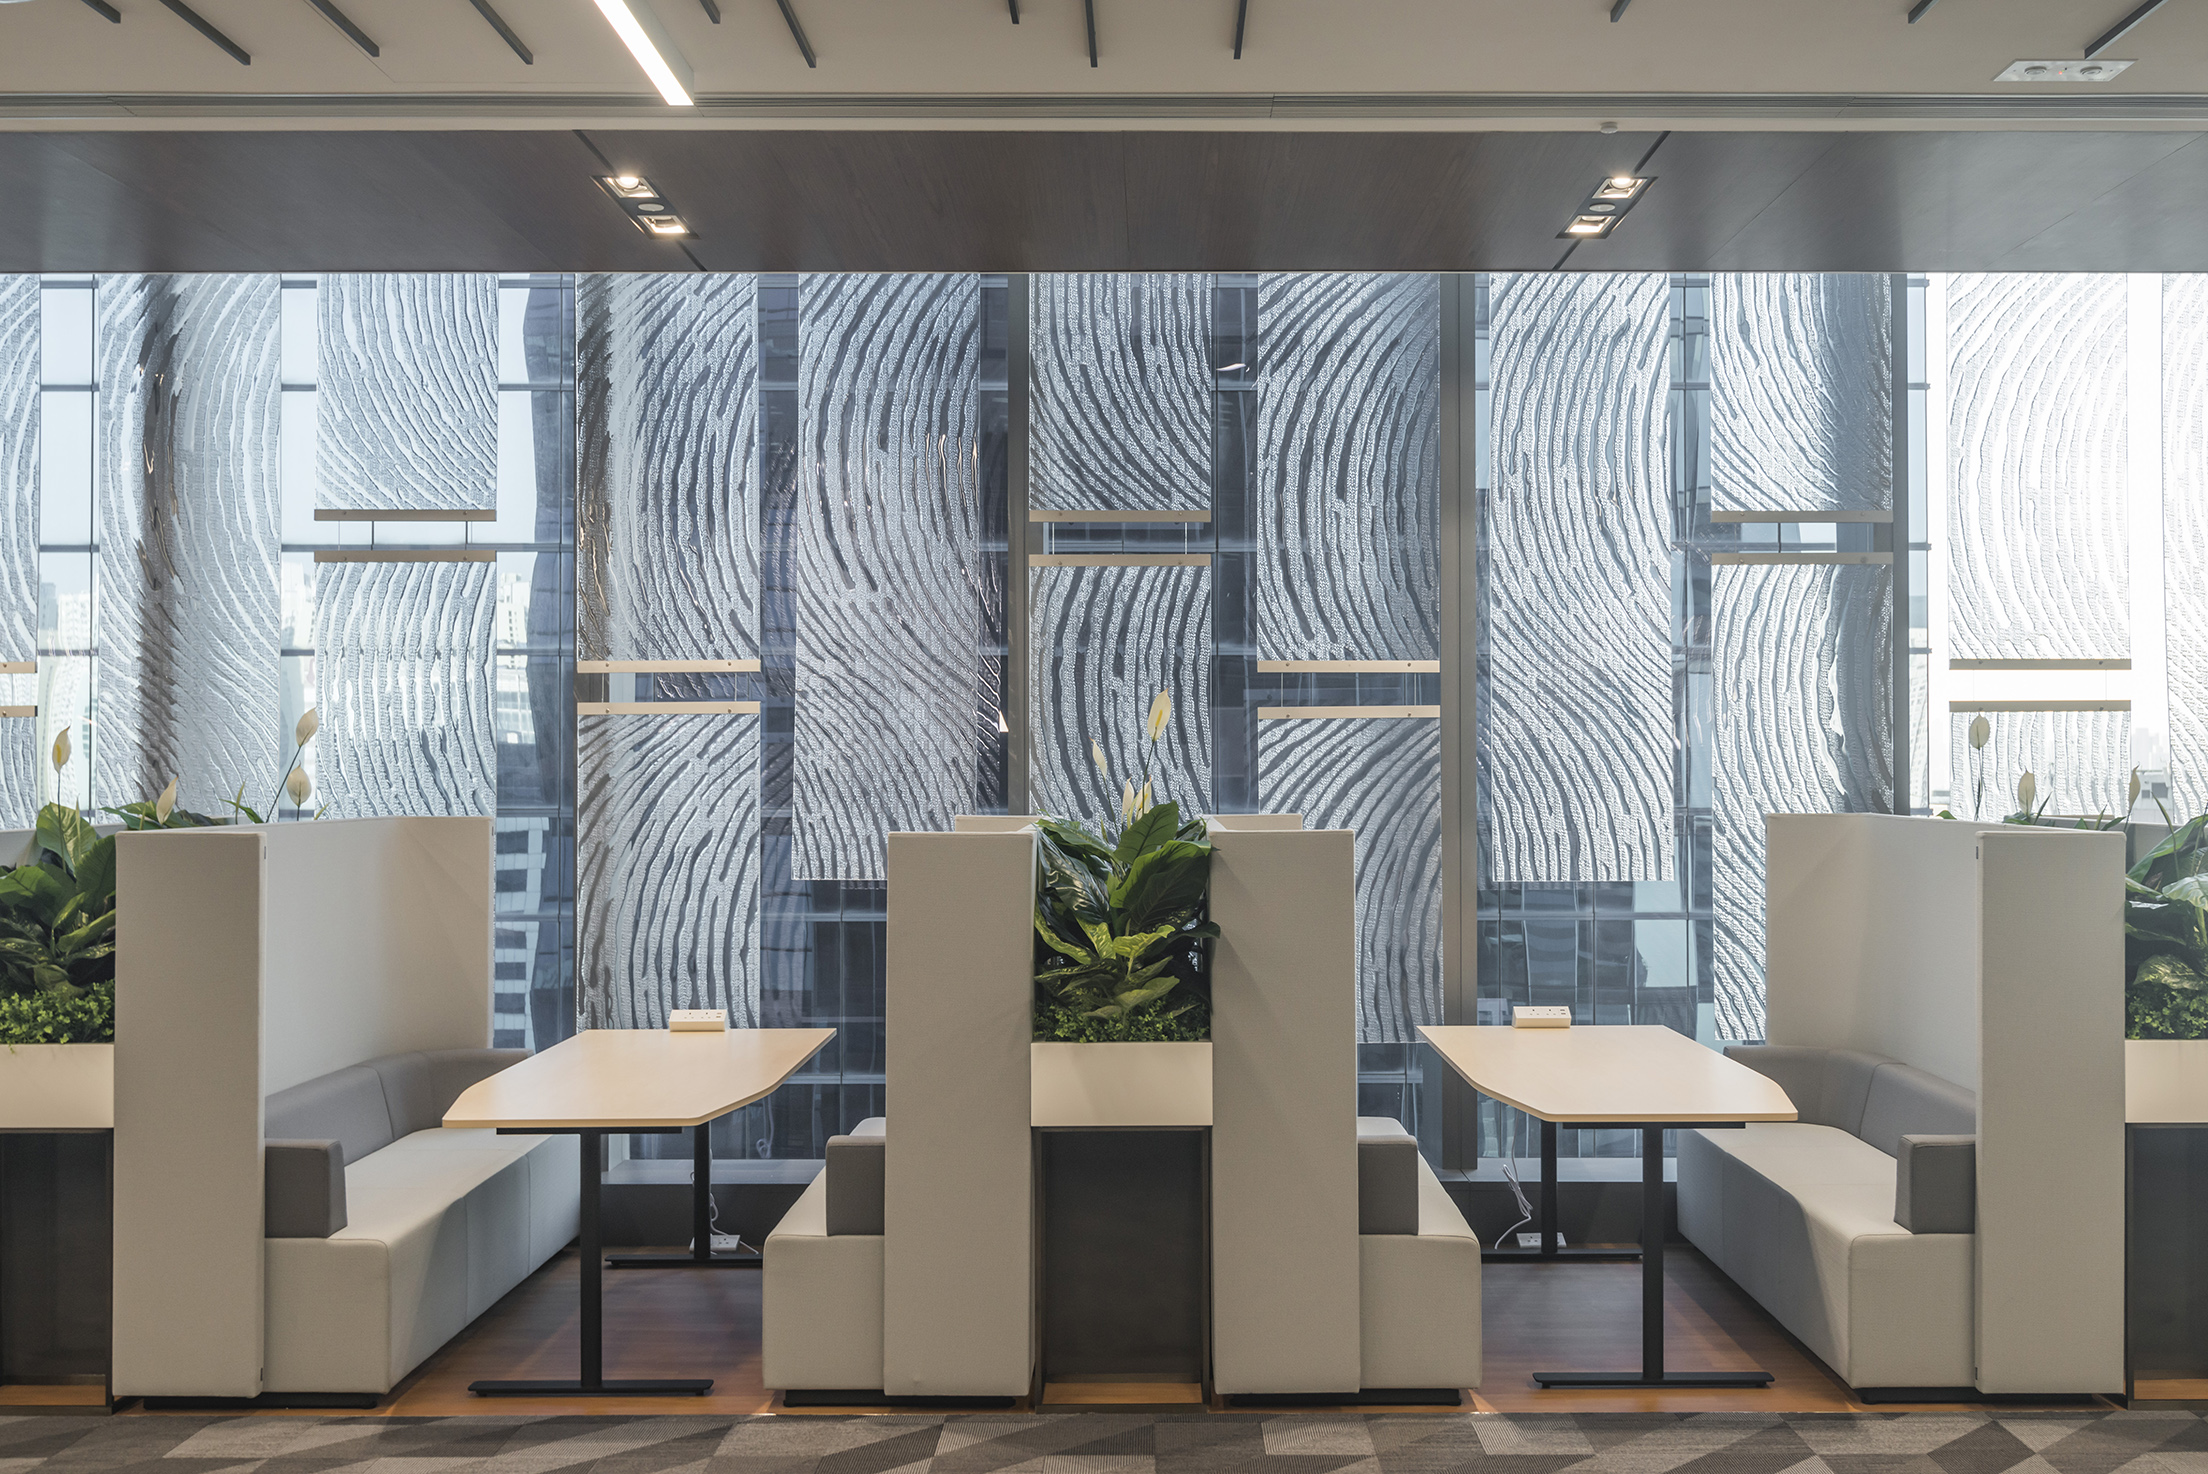 jeb-architecturalfinishes-compac-forbo-resinpanel-office-hk-01.jpg